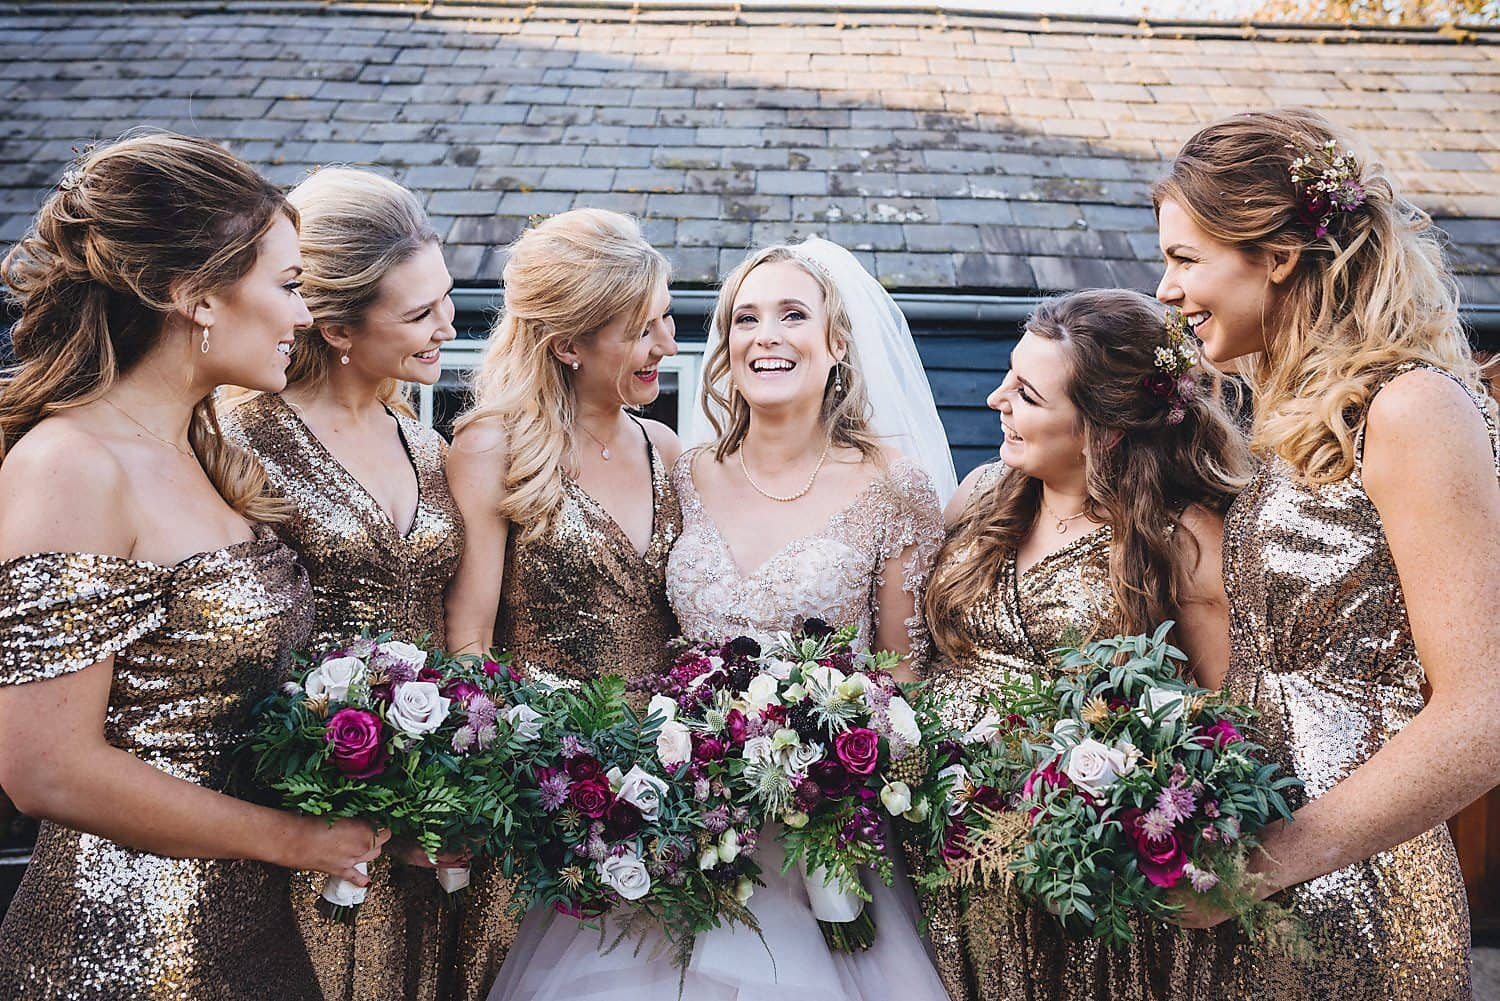 The bride stands with her four bridesmaids